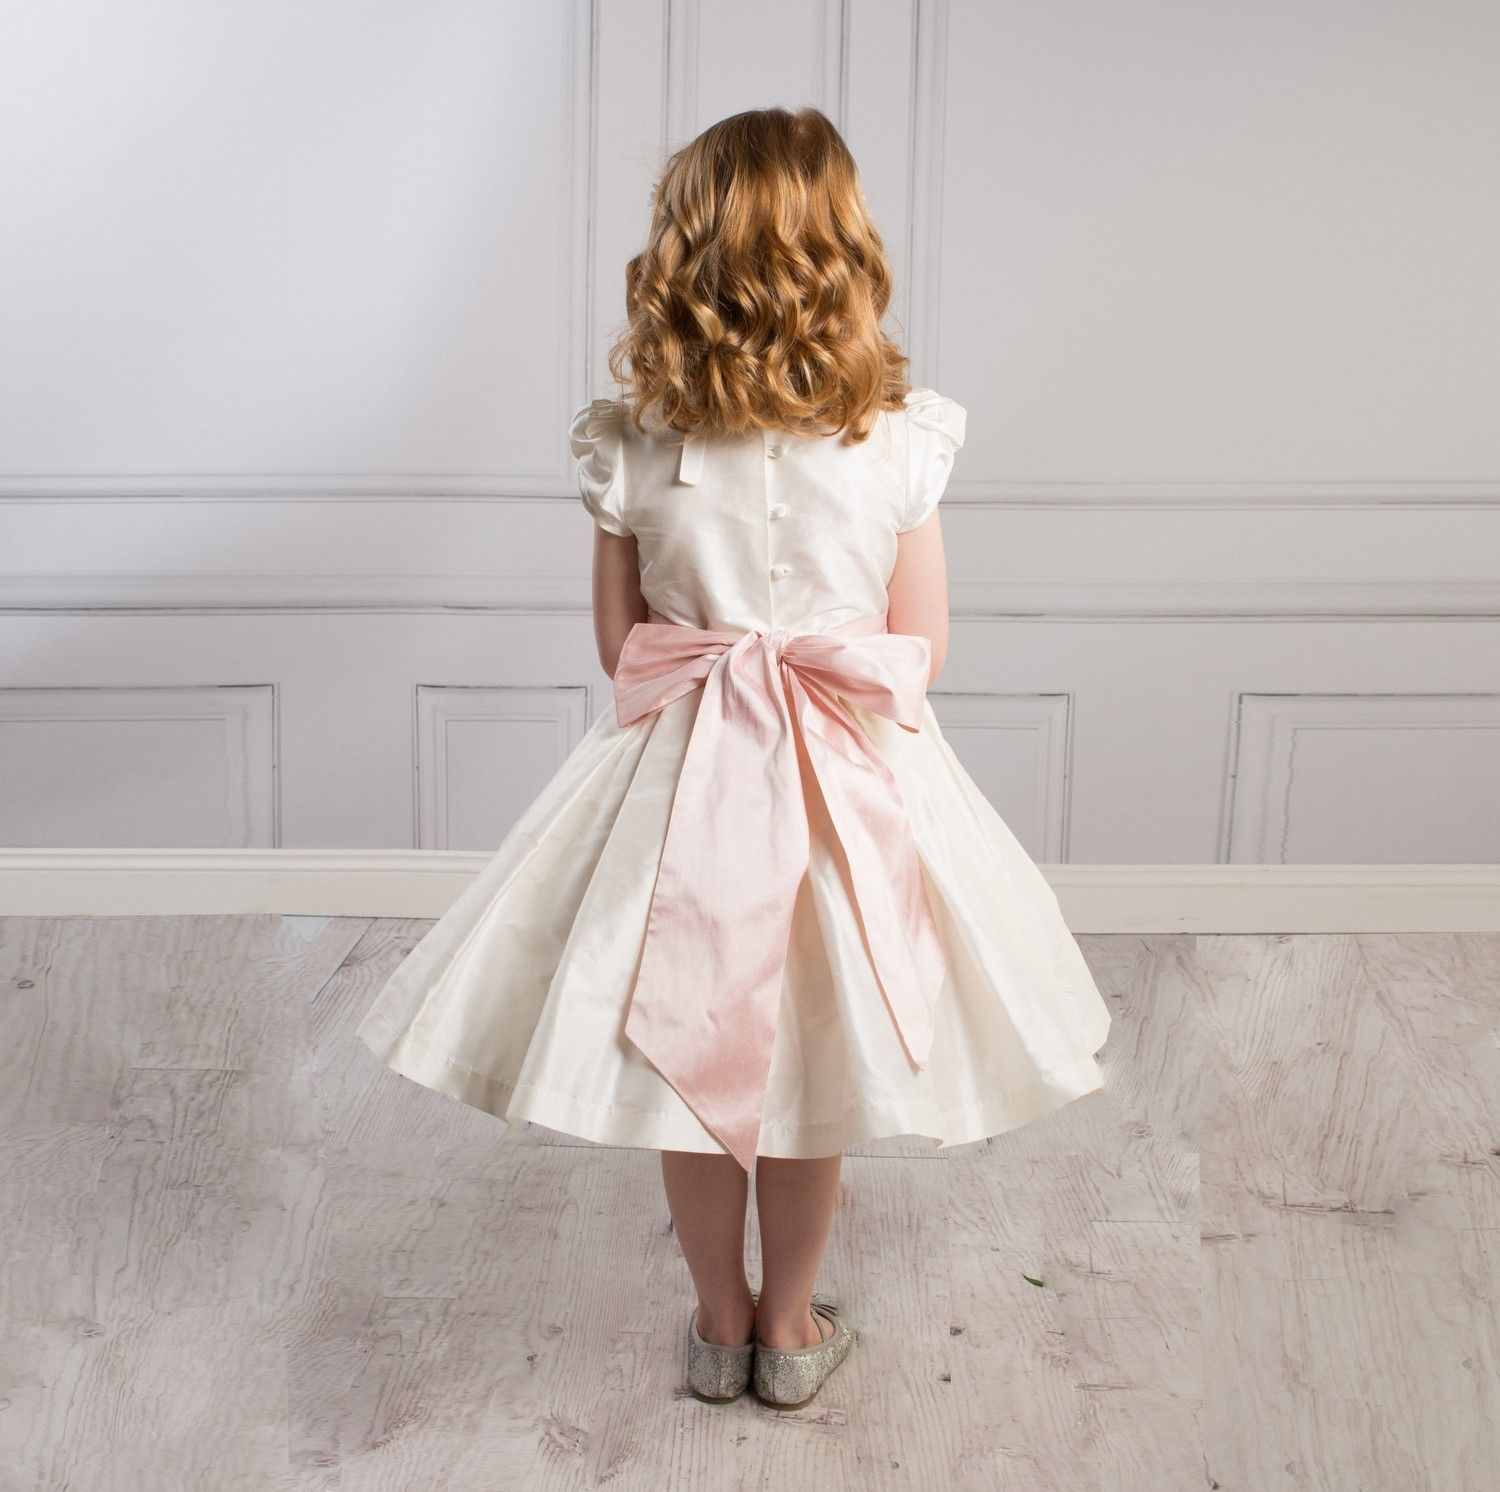 Traditional flower girl dresses uk childrens bridesmaid dresses uk traditional flower girl dresses uk childrens bridesmaid dresses uk luxury childrens clothes at sue ombrellifo Gallery